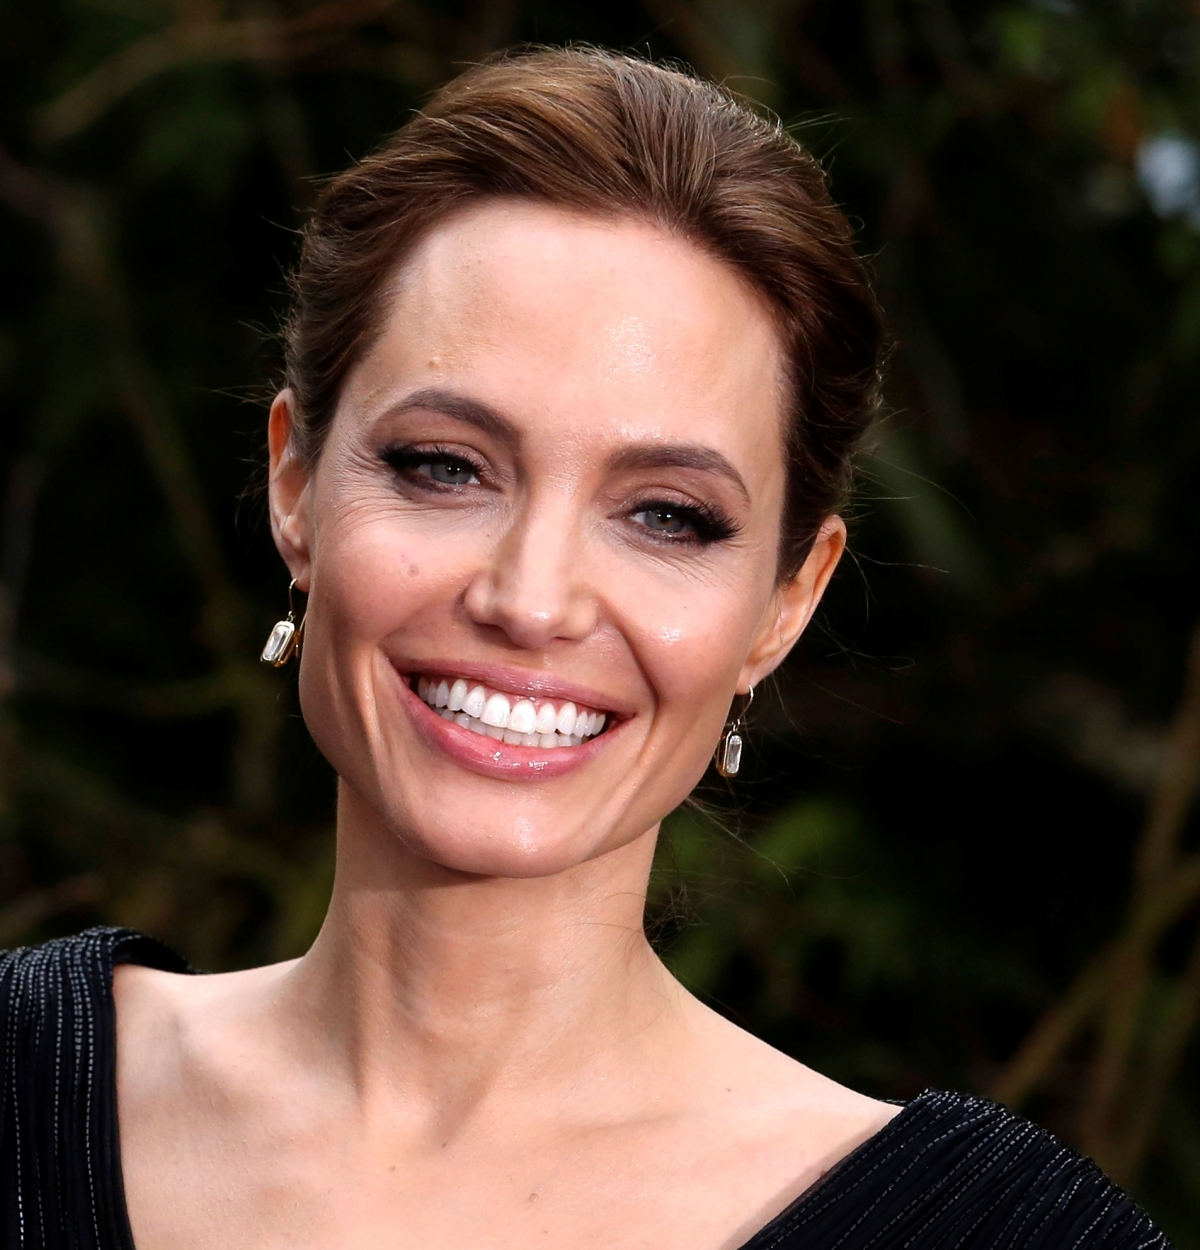 Angelina Jolie Wants to be a Better Wife to Brad Pitt ... Angelina Jolie